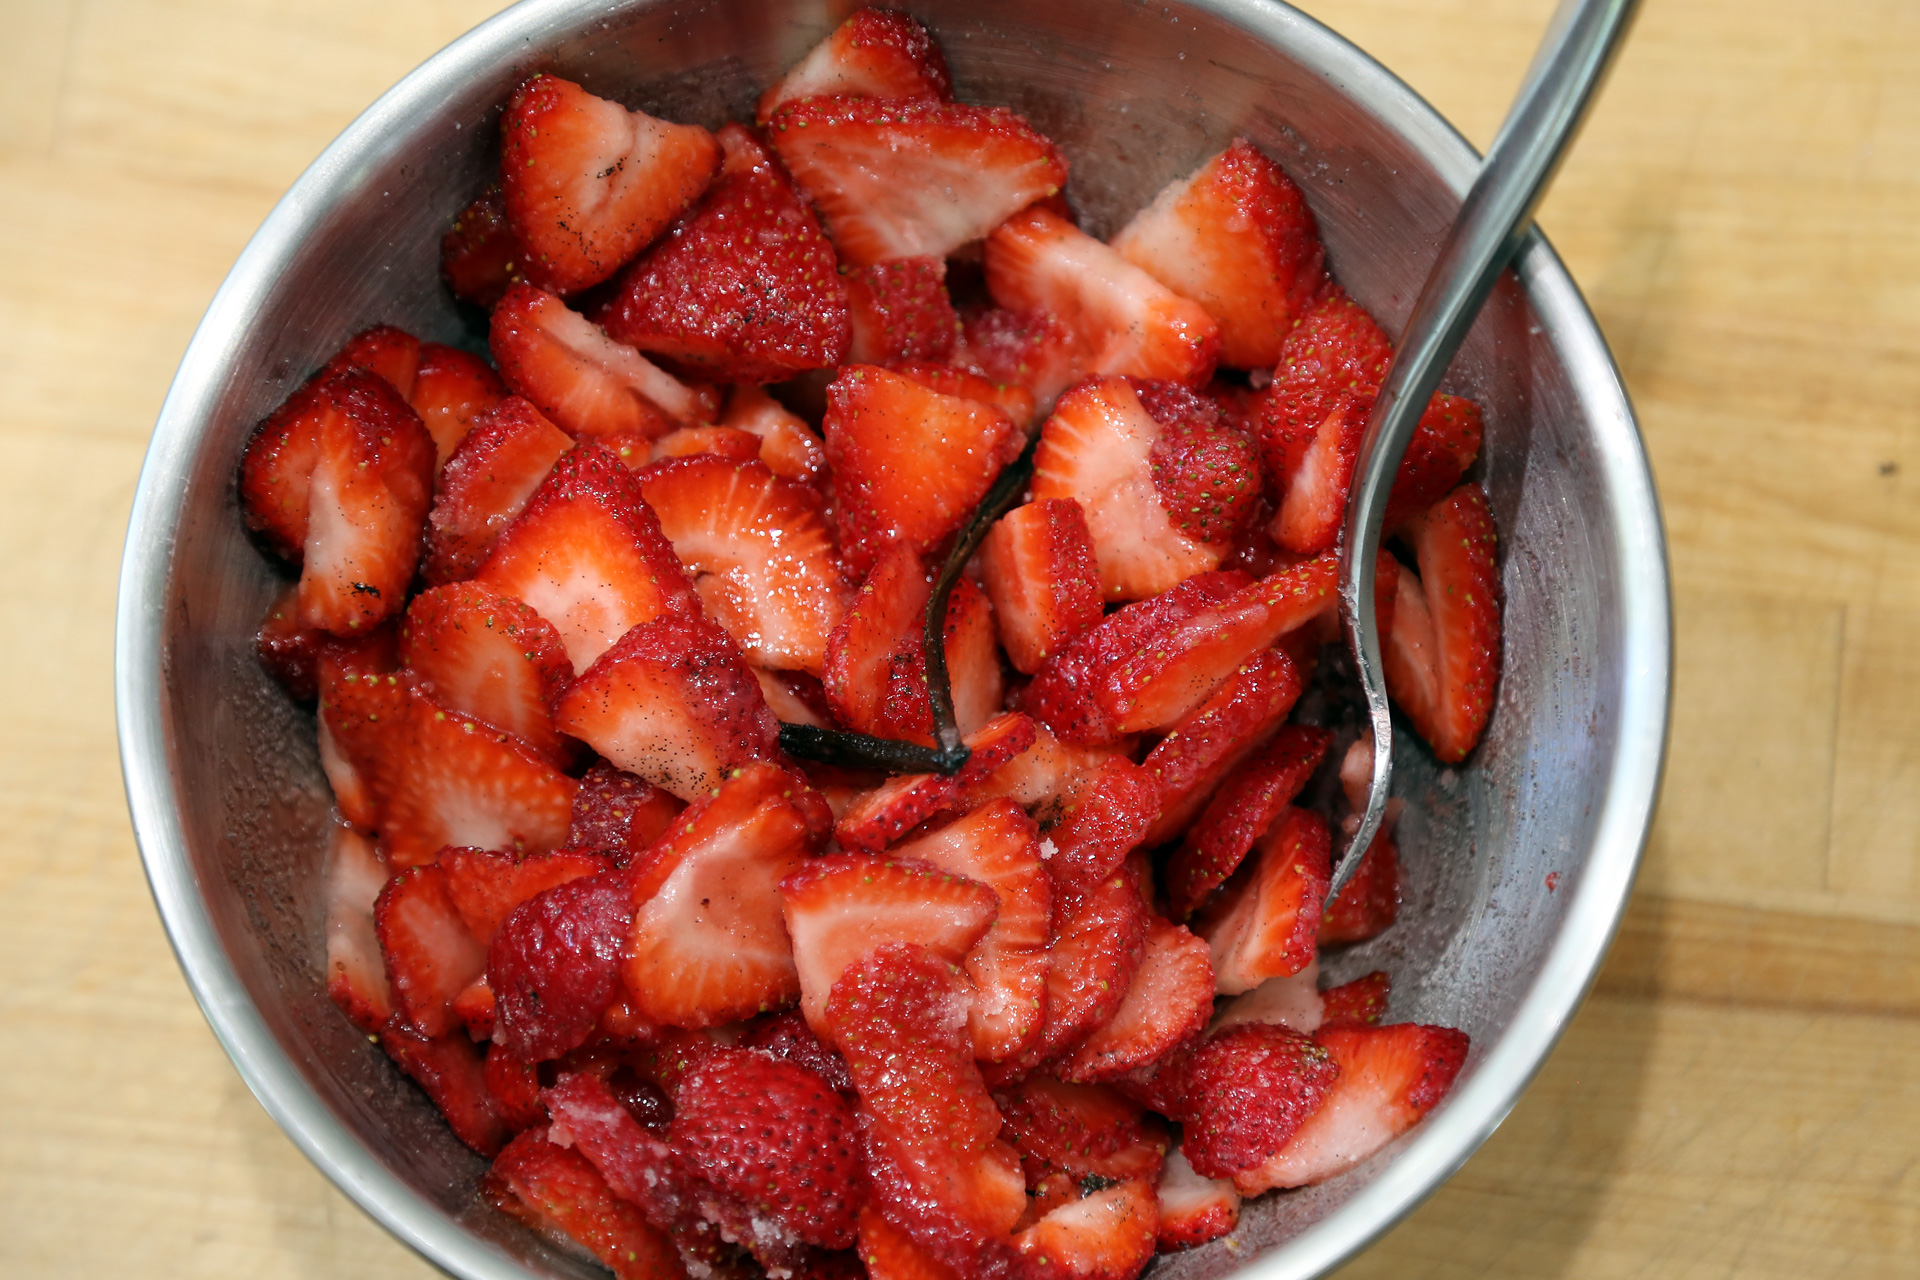 In a bowl, stir together the strawberries, 1/3 cup sugar, and vanilla bean seeds and pod.